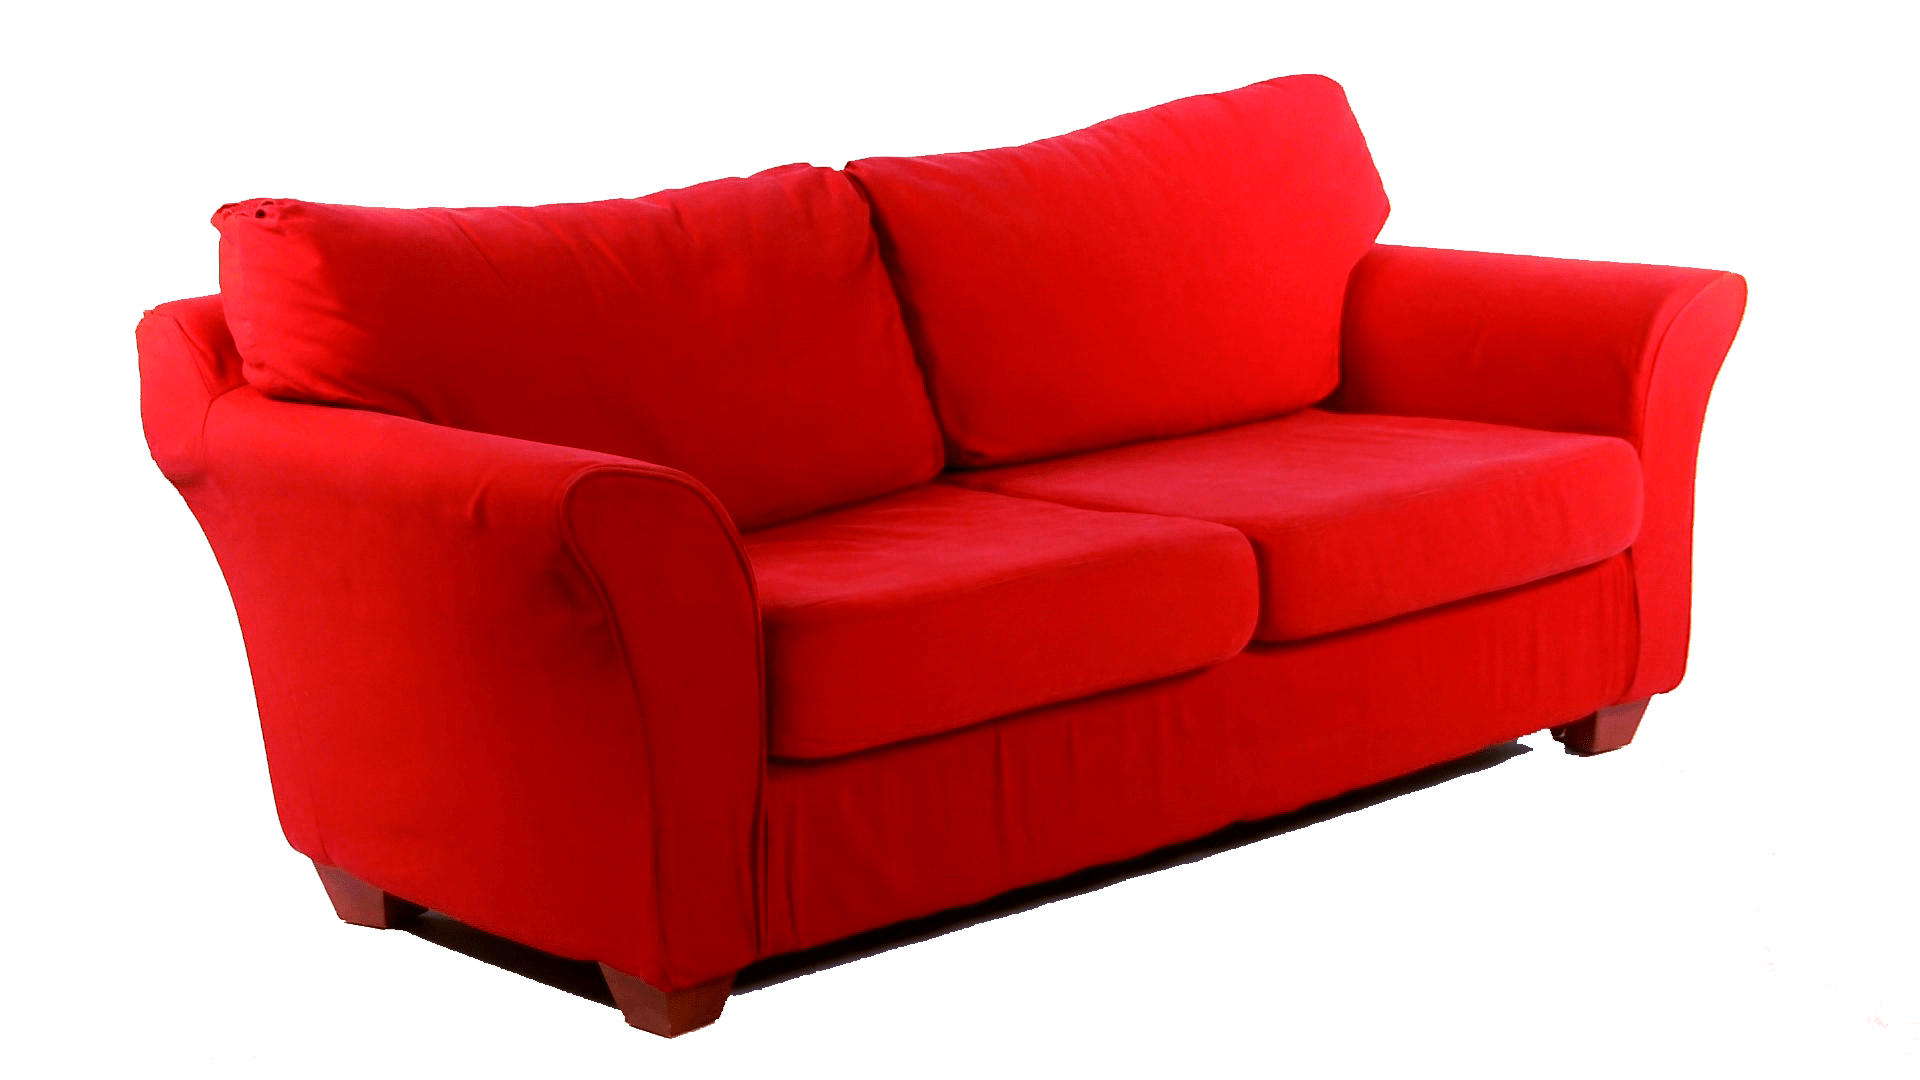 Couch Rot Red Couch Campaign Kicking Off In Birmingham